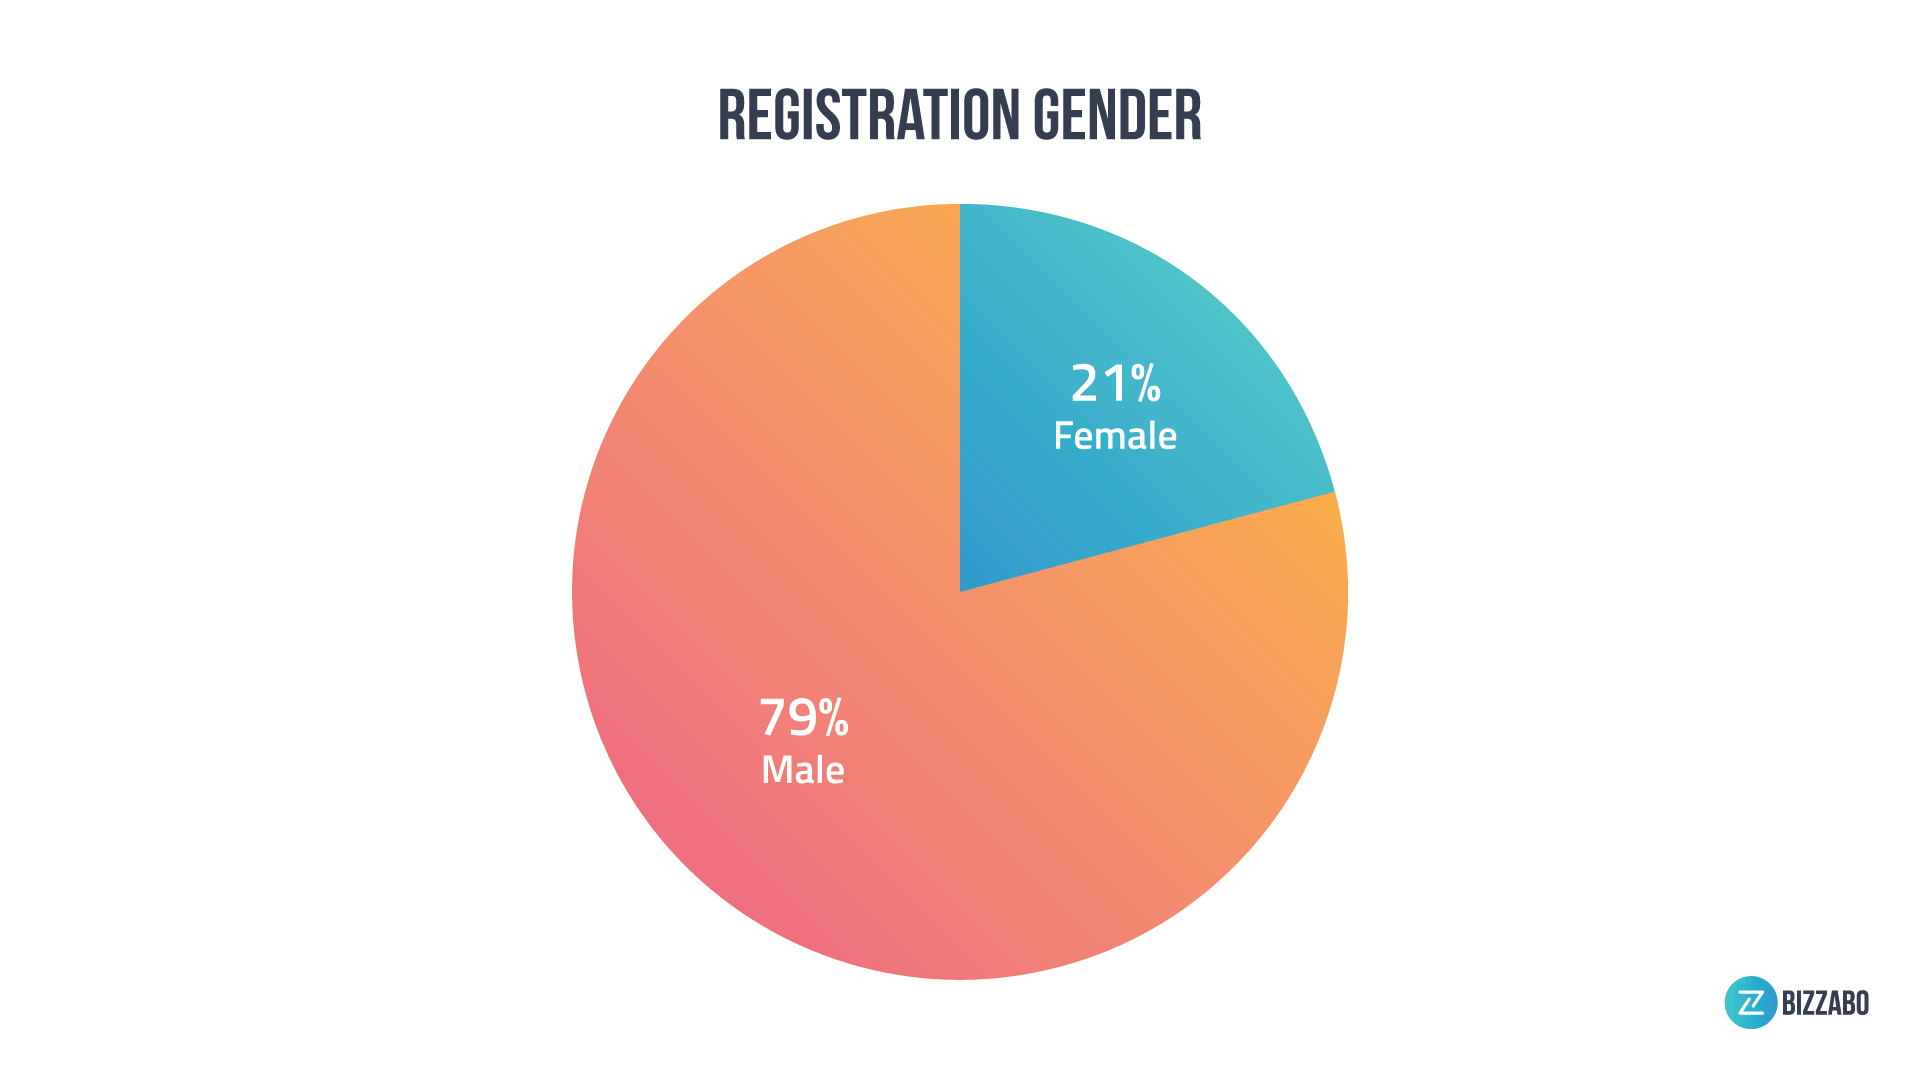 Only 21% of registrants at crypto events identified as female